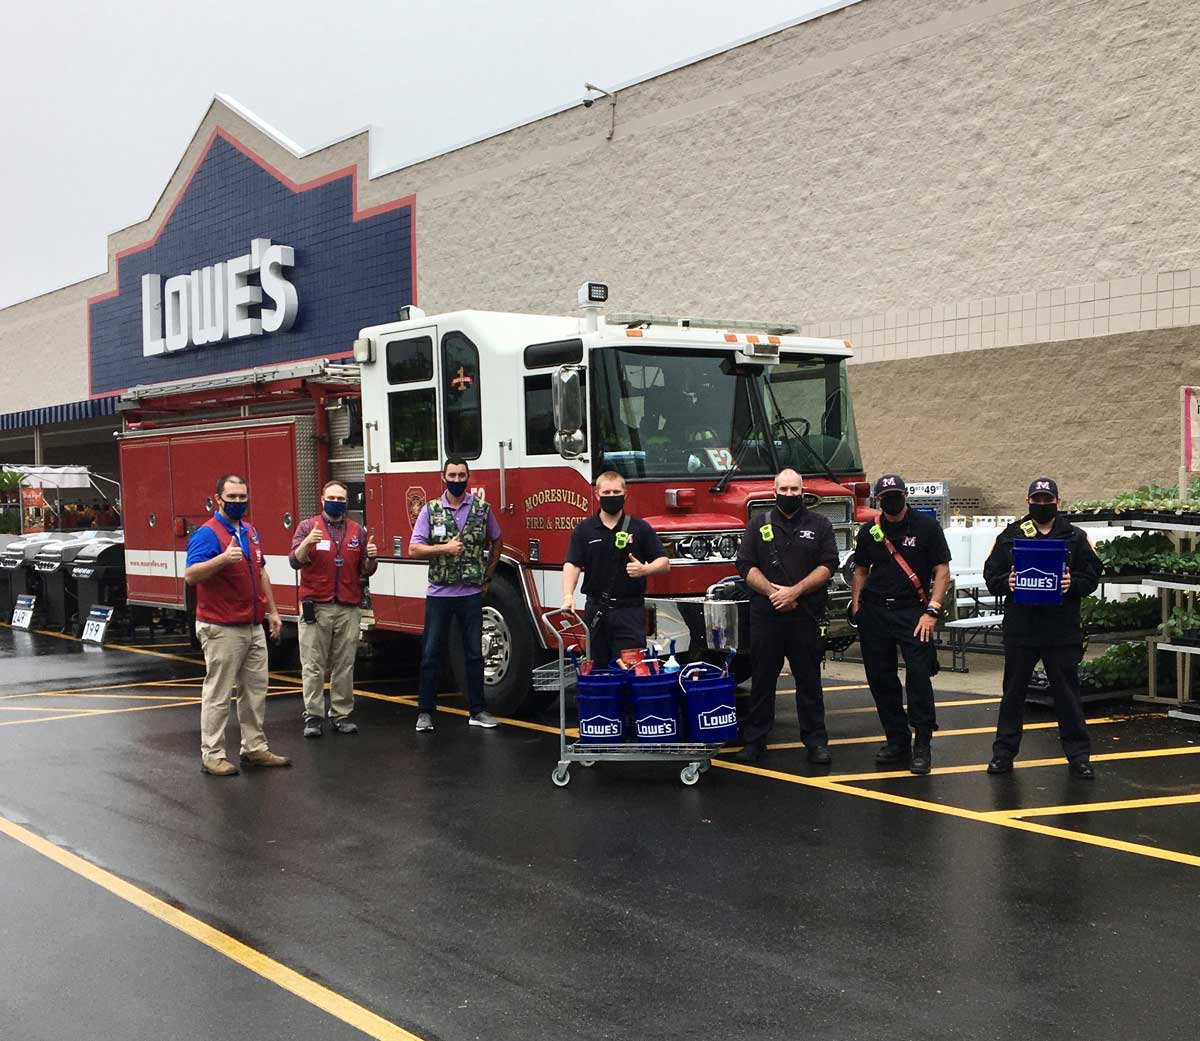 Lowe's fire safety event with fire truck